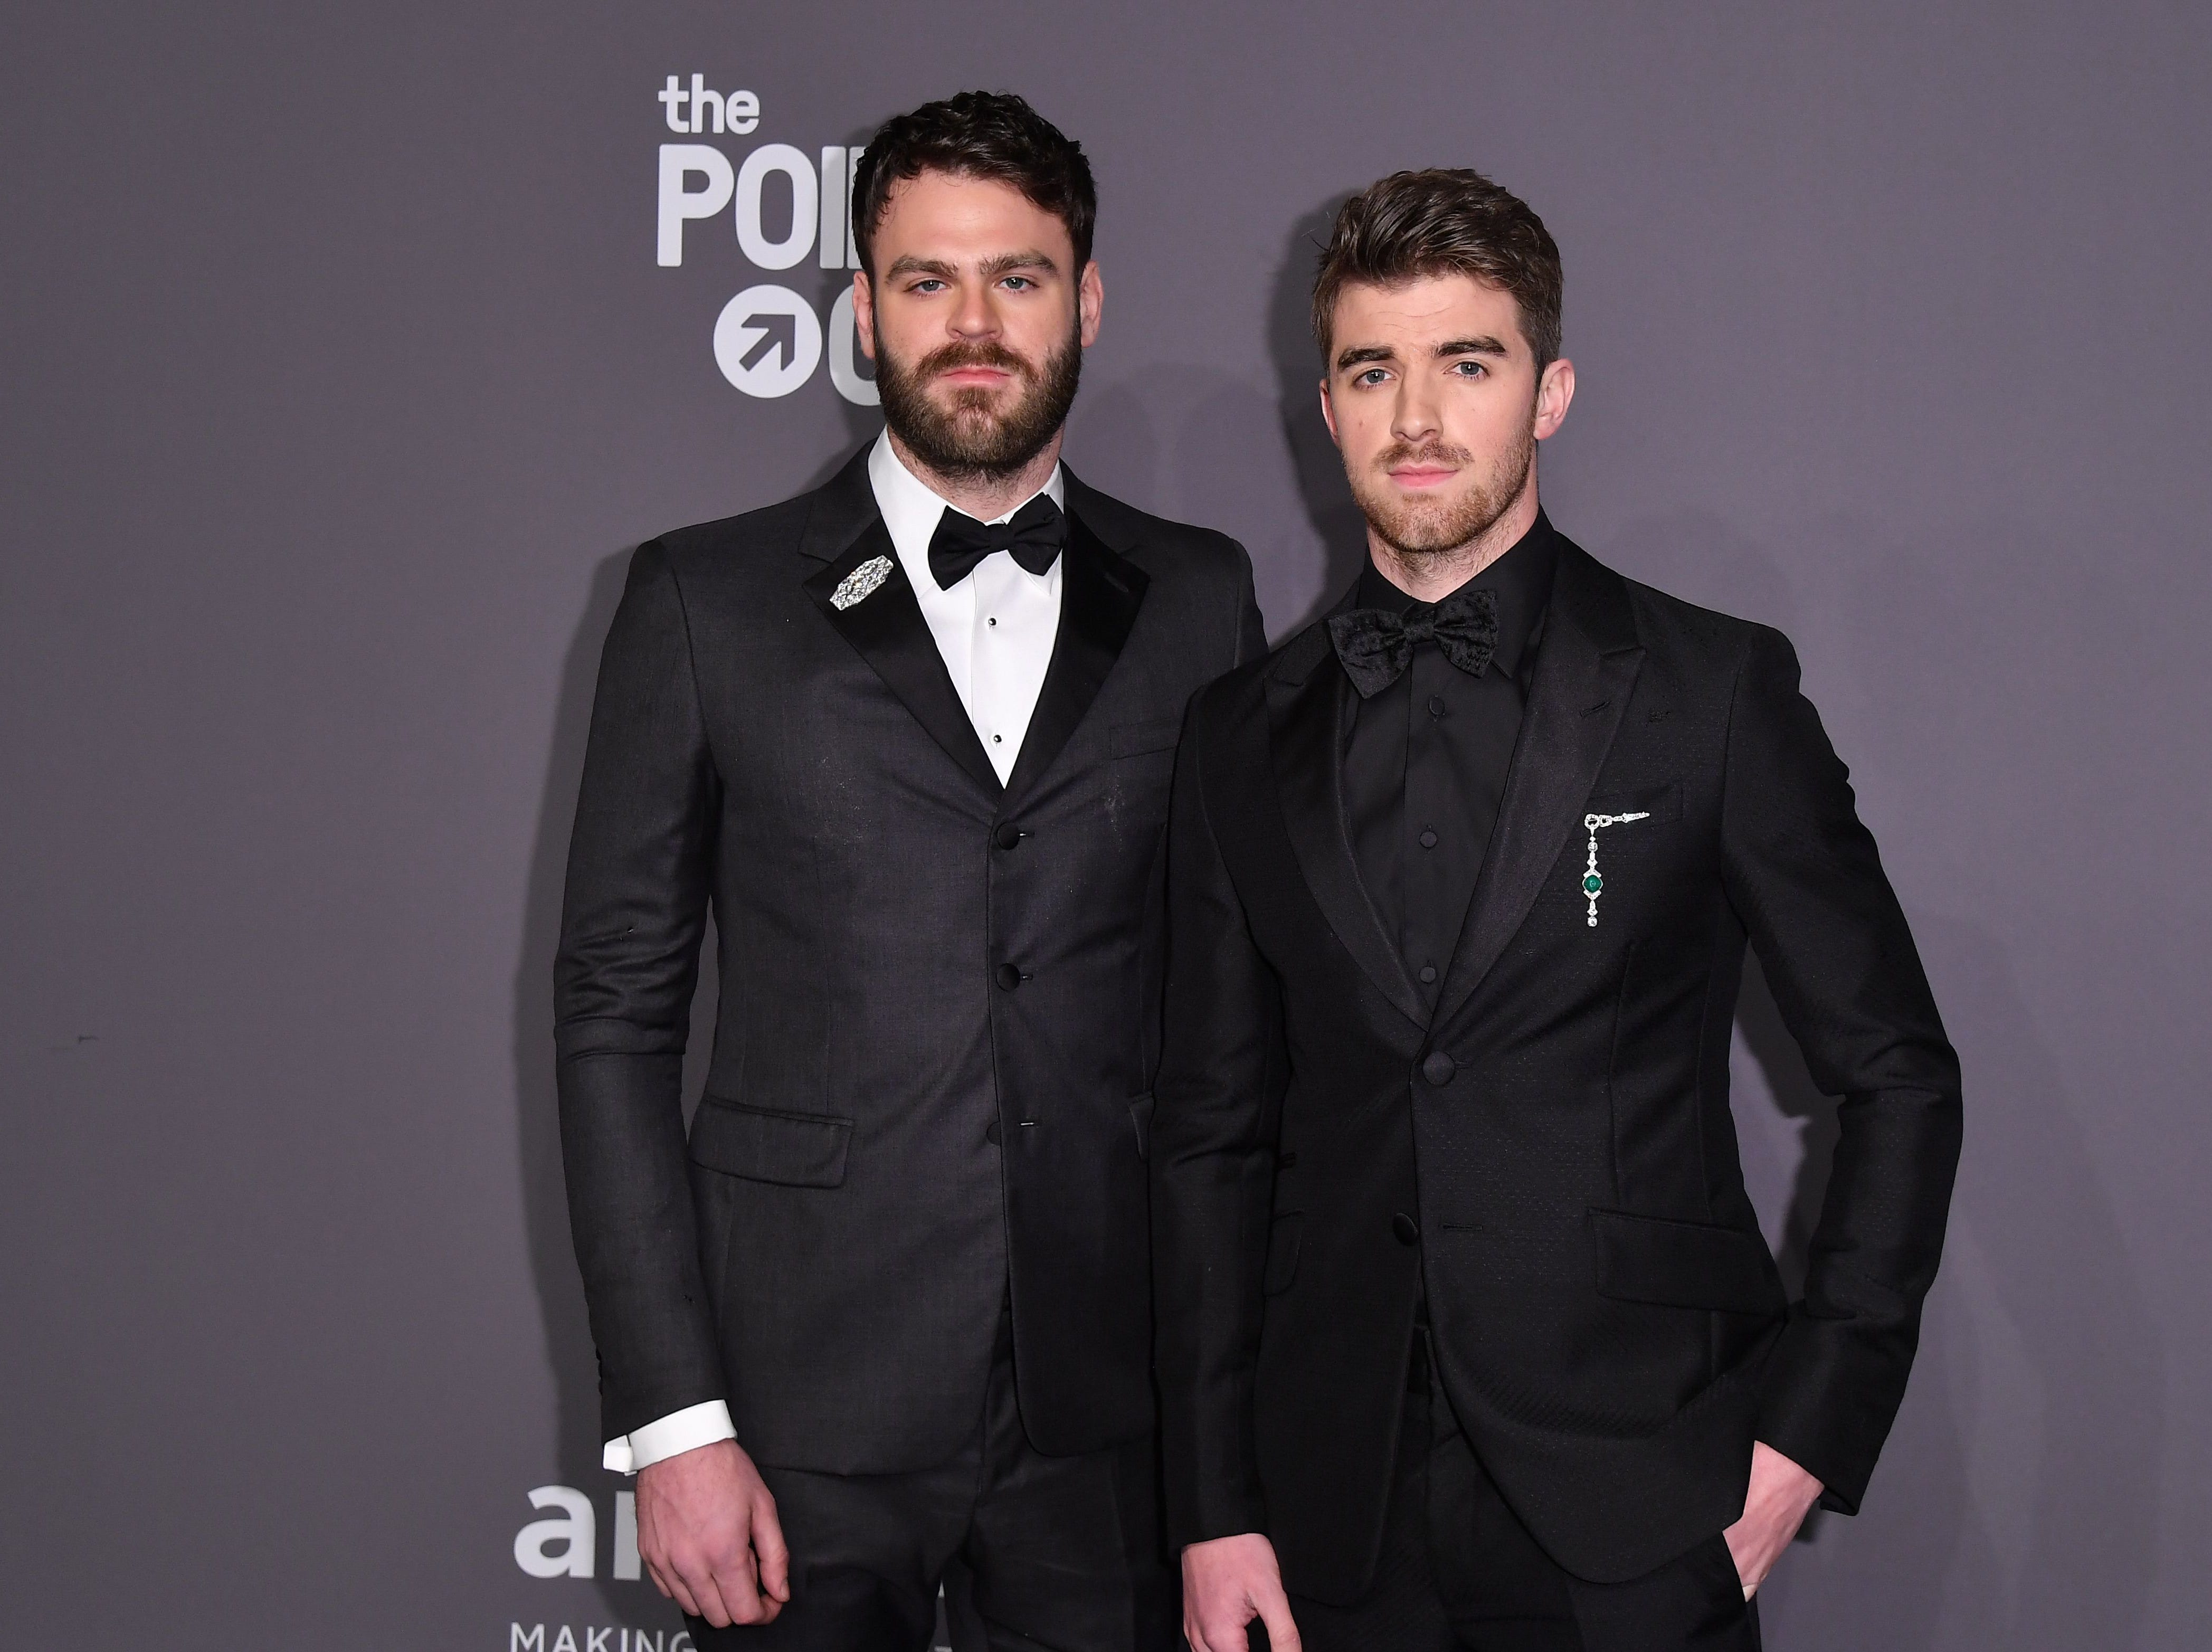 The Chainsmokers musicians Alex Pall (L) and Andrew Taggart (R) arrive at The amfAR Gala New York, the Foundations 21st annual benefit for AIDS research during New York Fashion Week at Cipriani Wall Street on February 6, 2019 in New York. (Photo by ANGELA WEISS / AFP)ANGELA WEISS/AFP/Getty Images ORG XMIT: The Found ORIG FILE ID: AFP_1D46DY